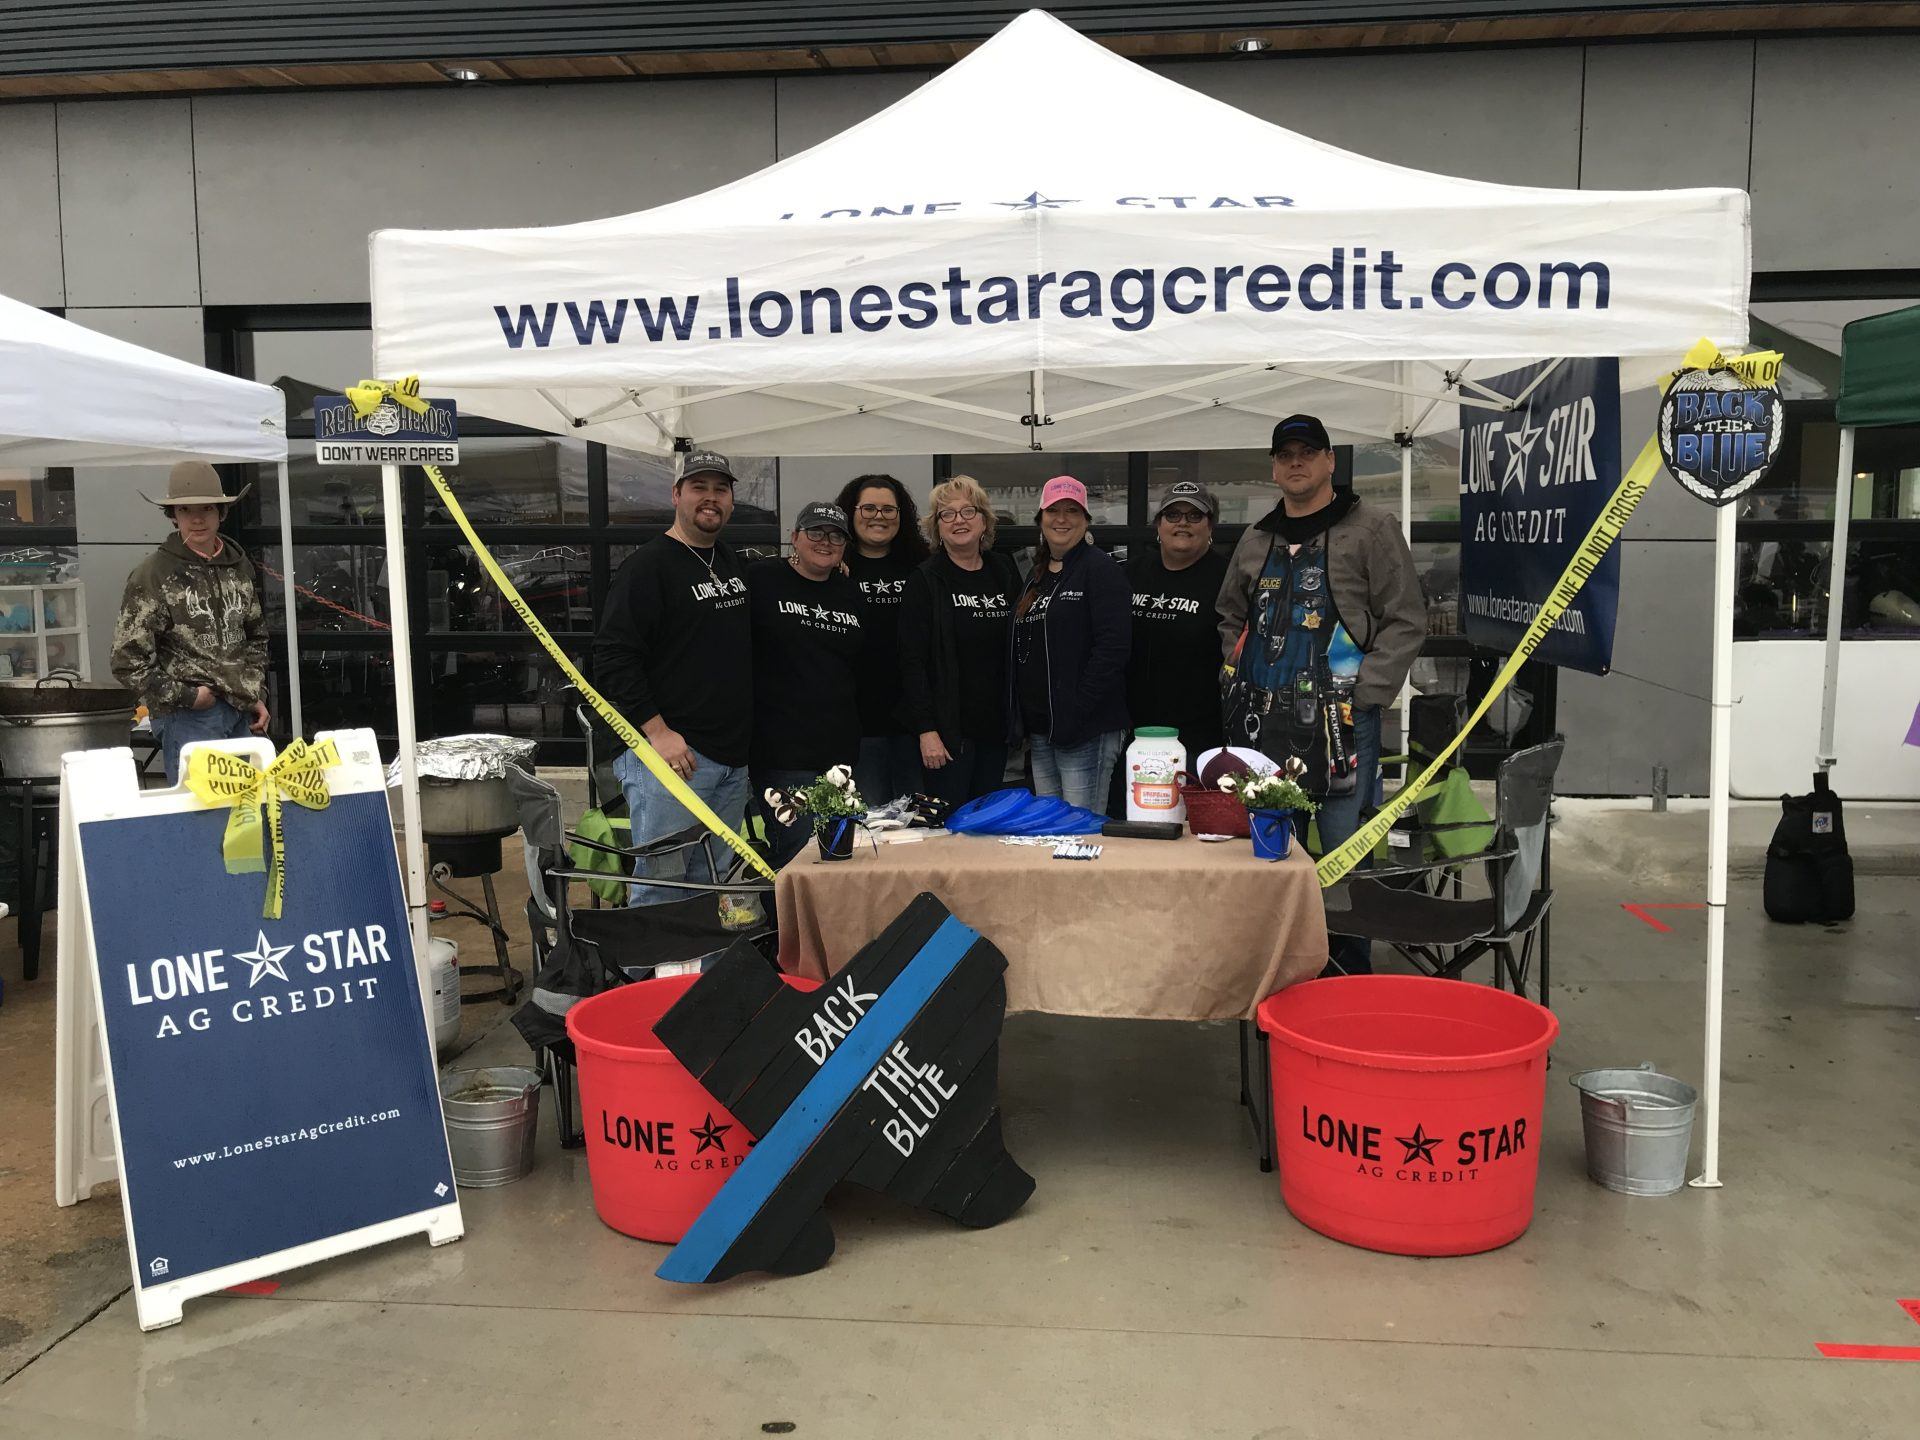 Lone Star Ag Credit, Paris office employees at a local chili cook-off event.